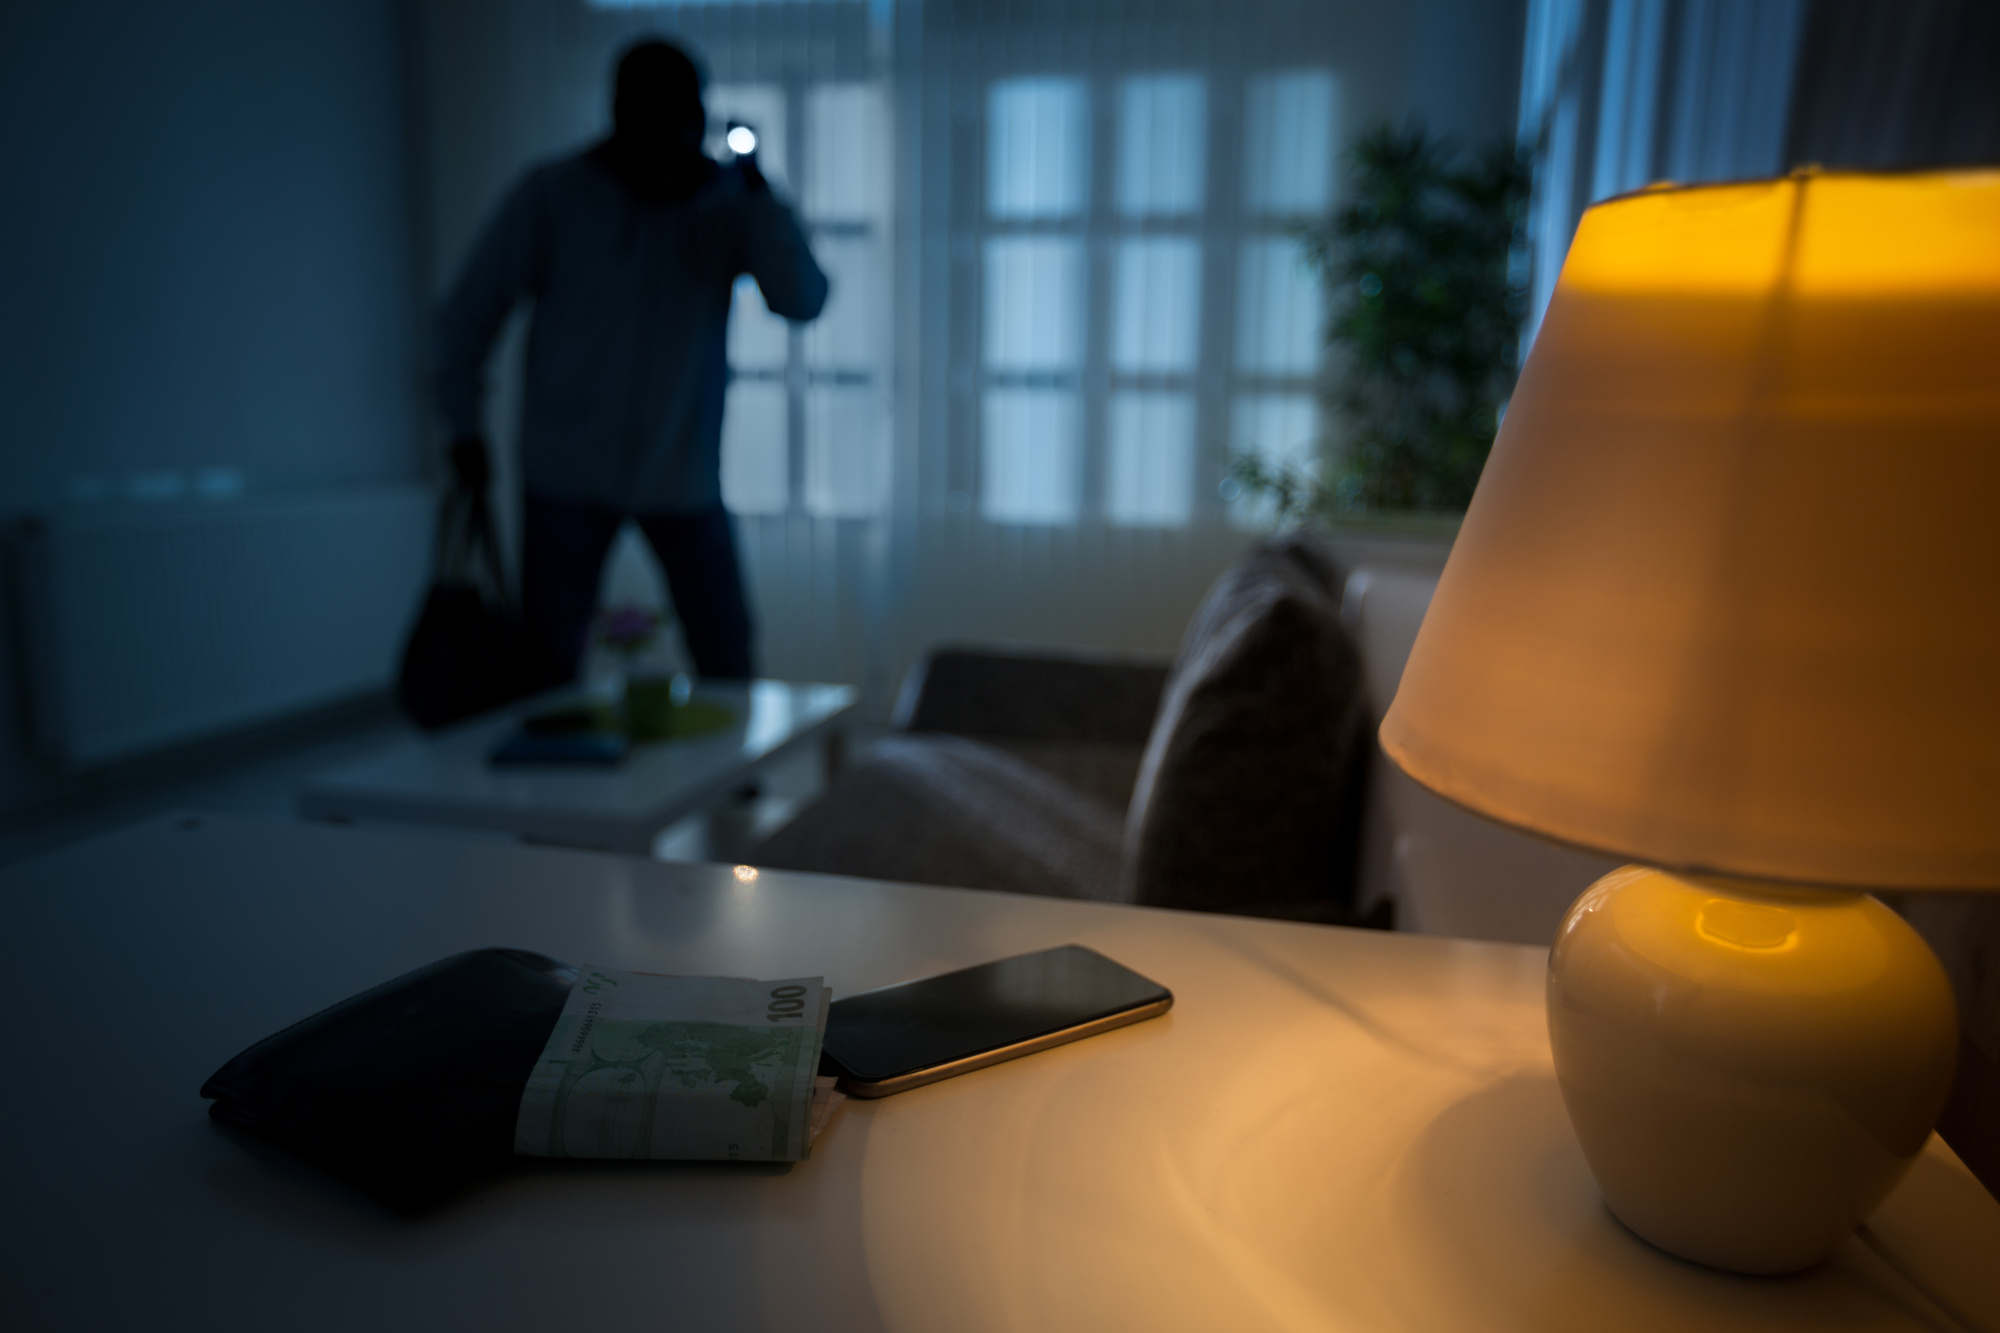 6 Things You Need to Do After a Home Break-In